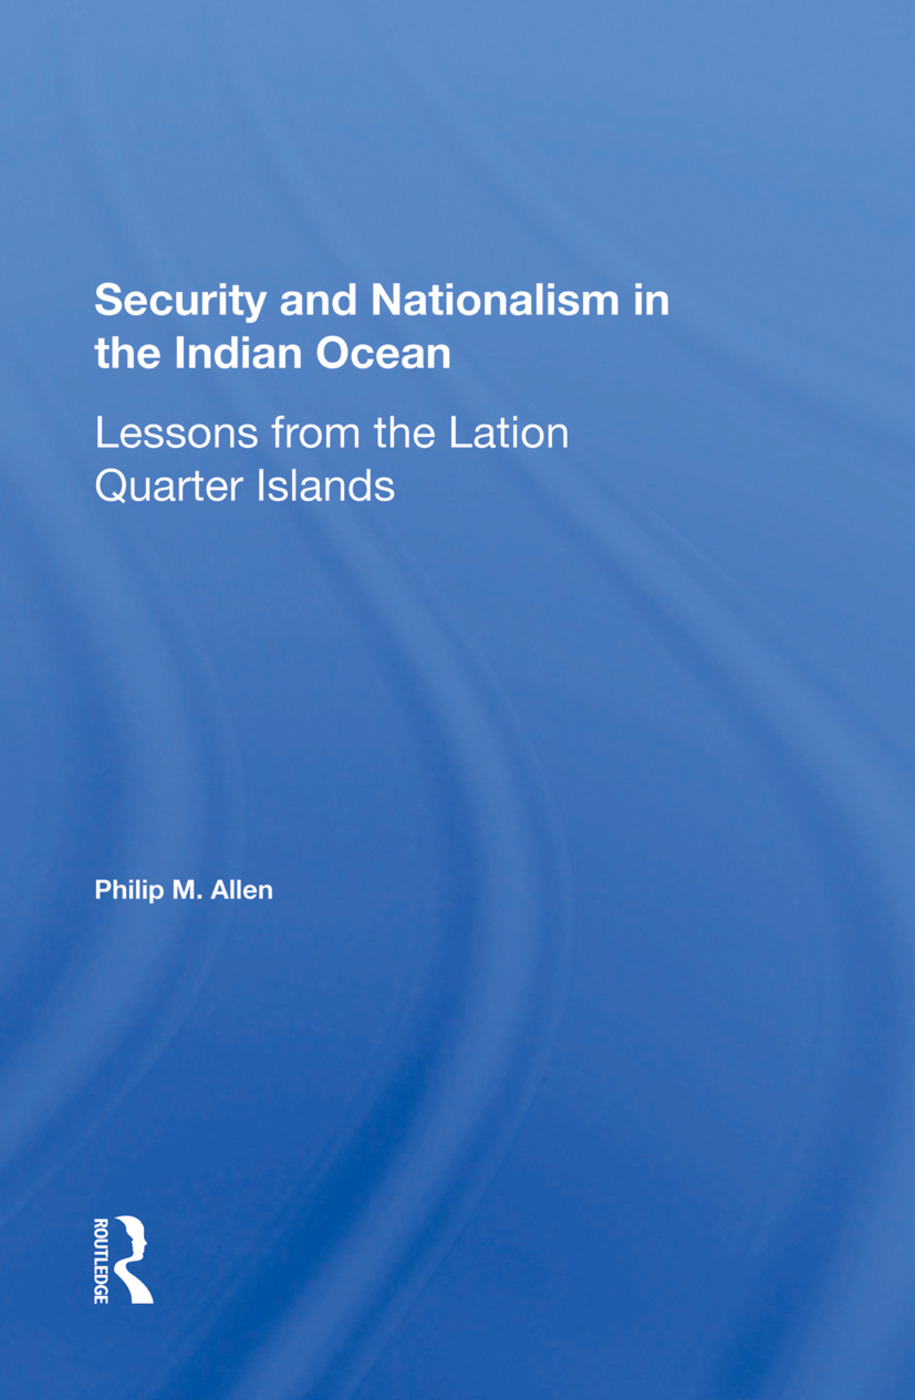 Security And Nationalism In The Indian Ocean: Lessons From The Latin Quarter Islands, 1st Edition (Hardback) book cover